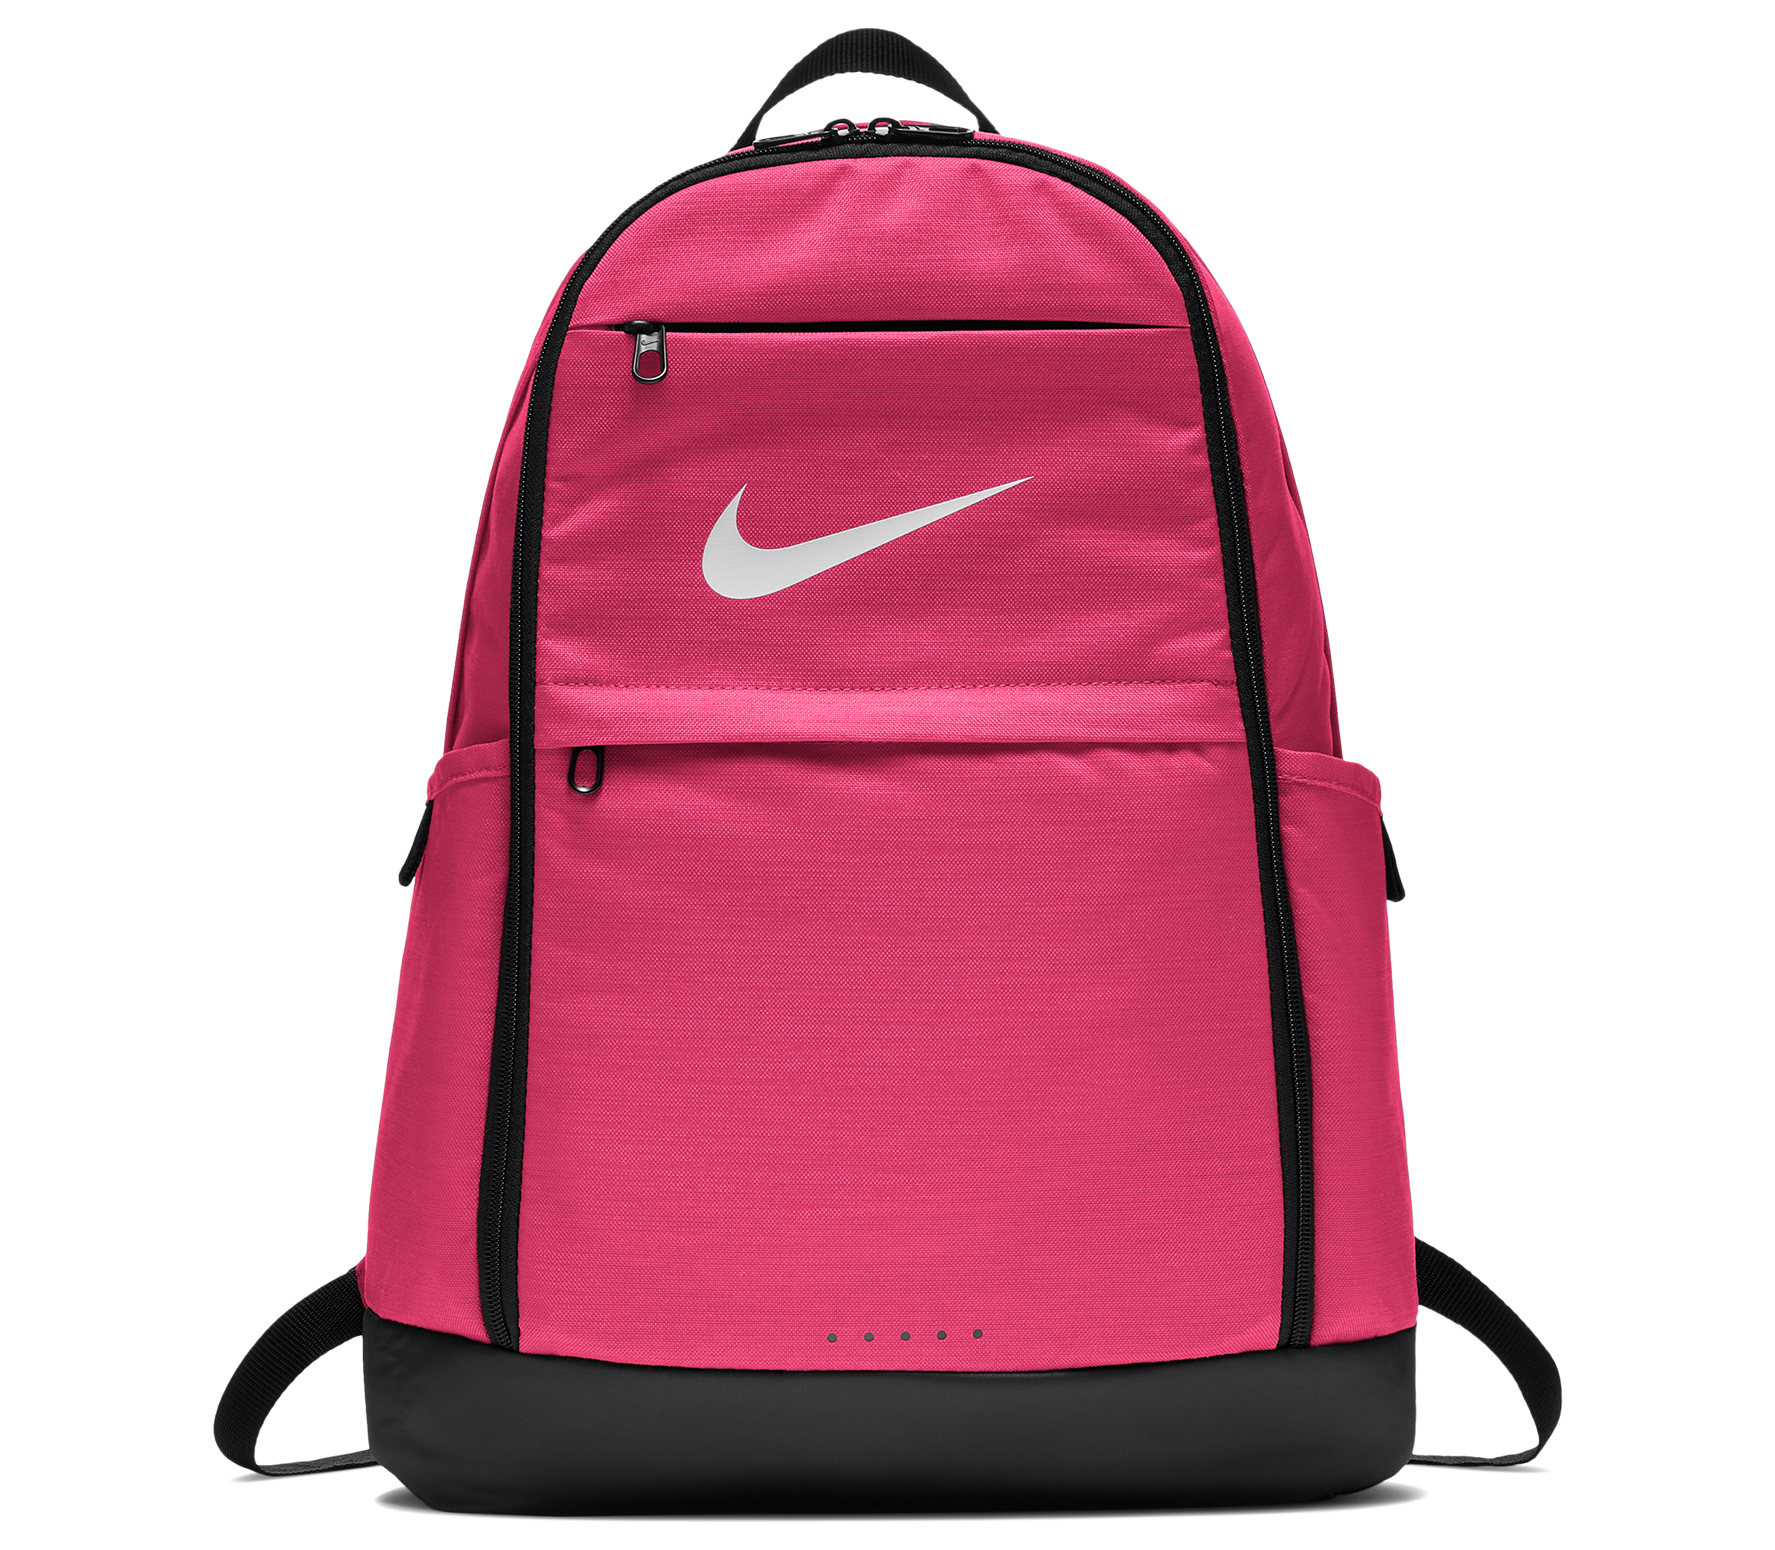 d7b998ee1919 Nike - Brasilia training backpack (pink black) - buy it at the ...